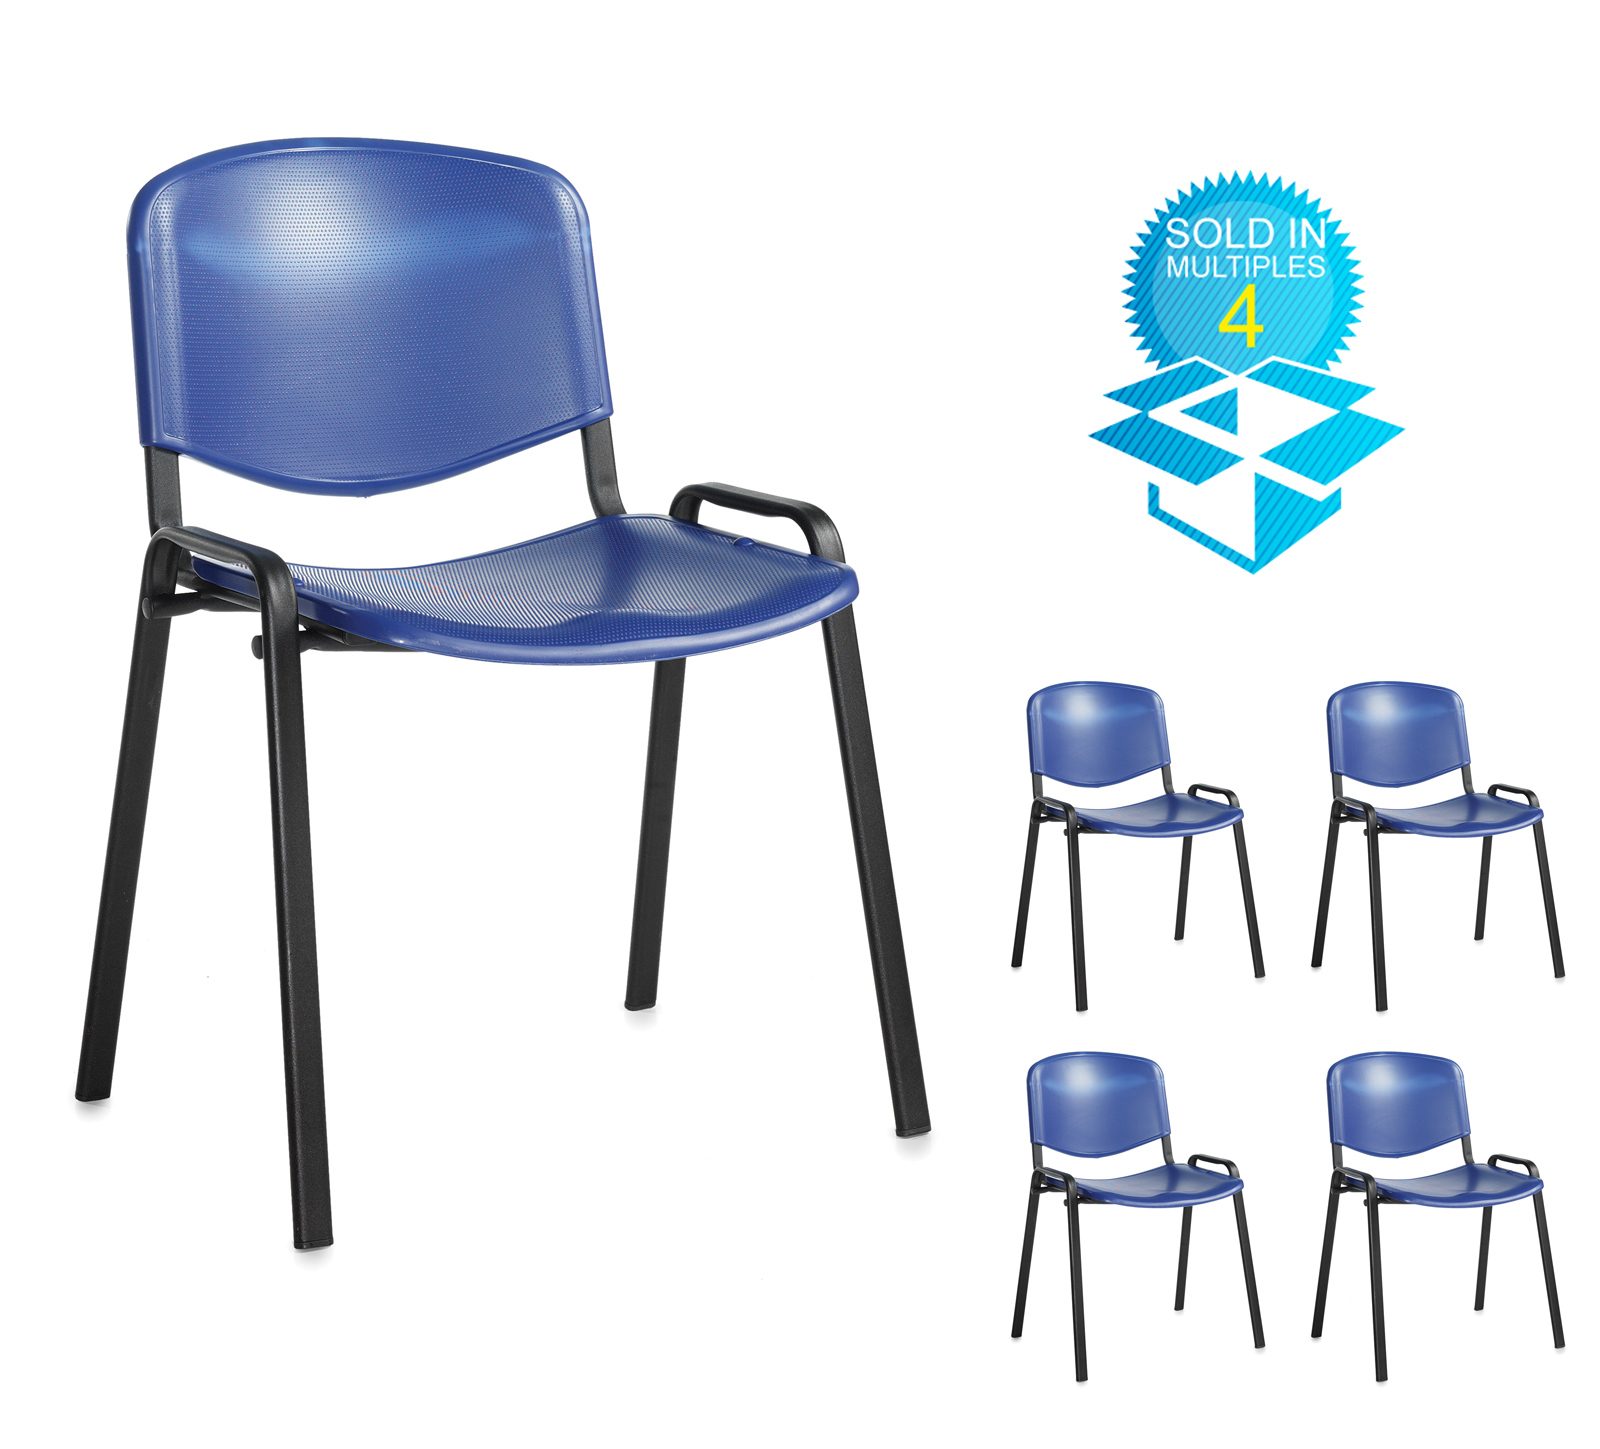 Taurus plastic meeting room stackable chair (box of 4) with no arms - blue with black frame